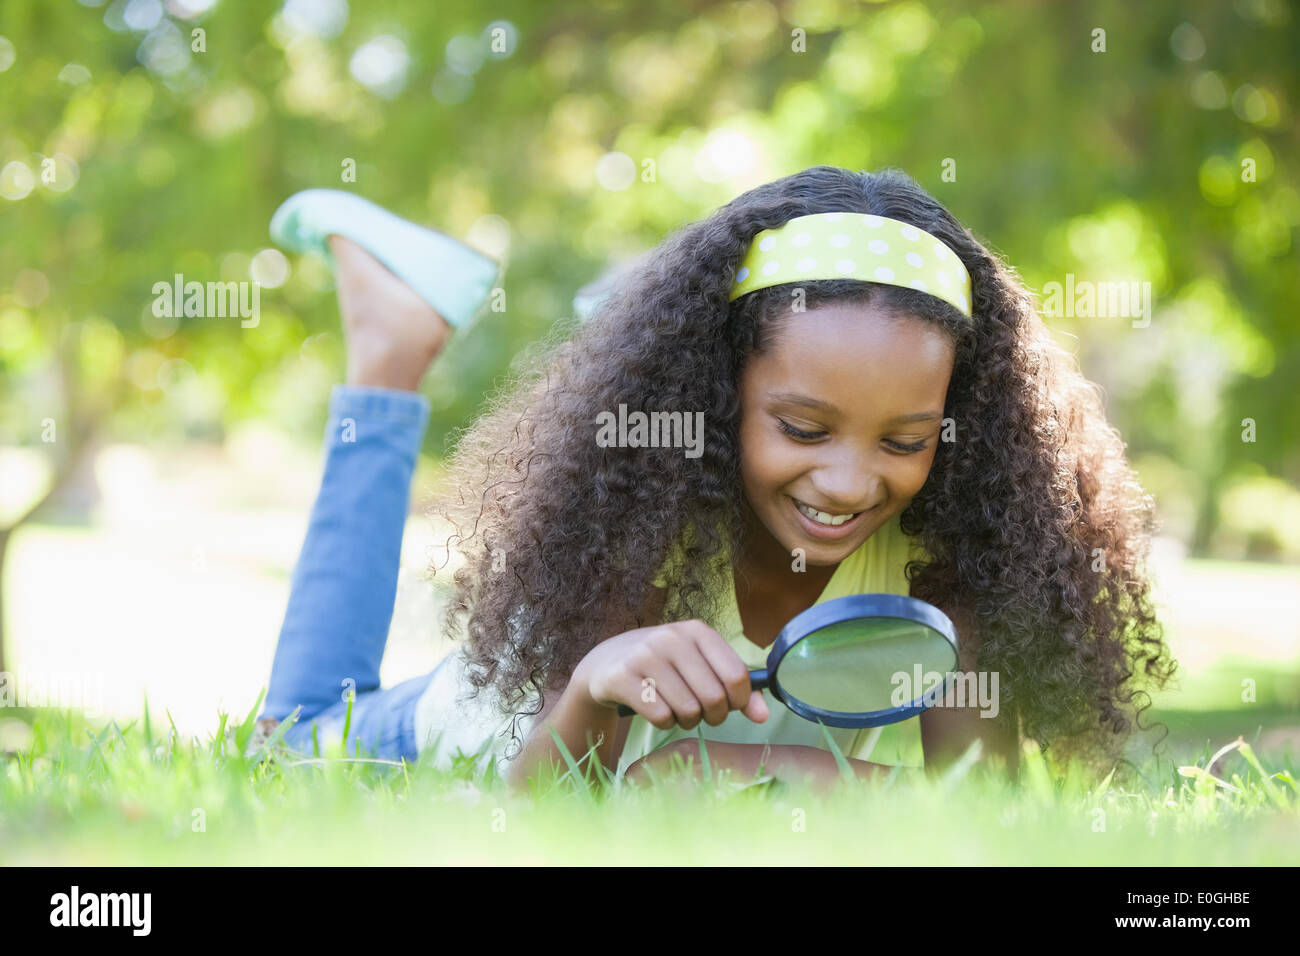 Young girl looking at grass through magnifying glass in the park - Stock Image